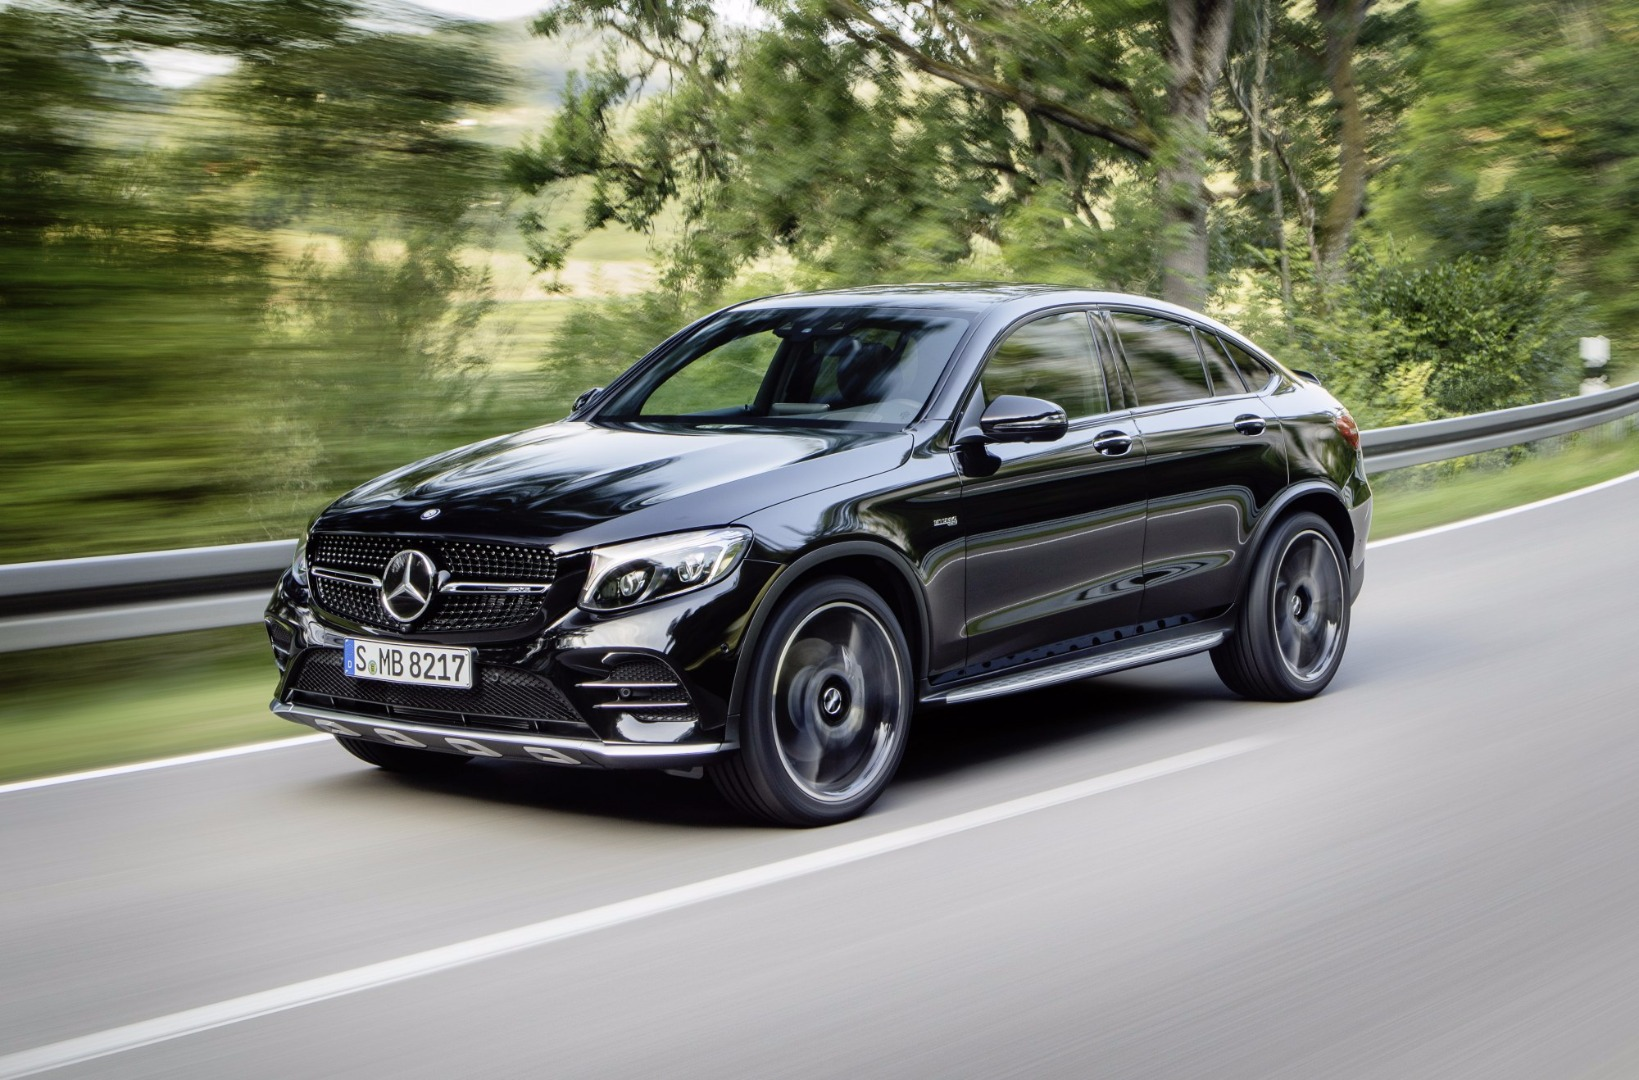 Mercedes Benz Clc 2019 >> News - Mercedes-AMG Unveils GLC 43 4Matic Coupe